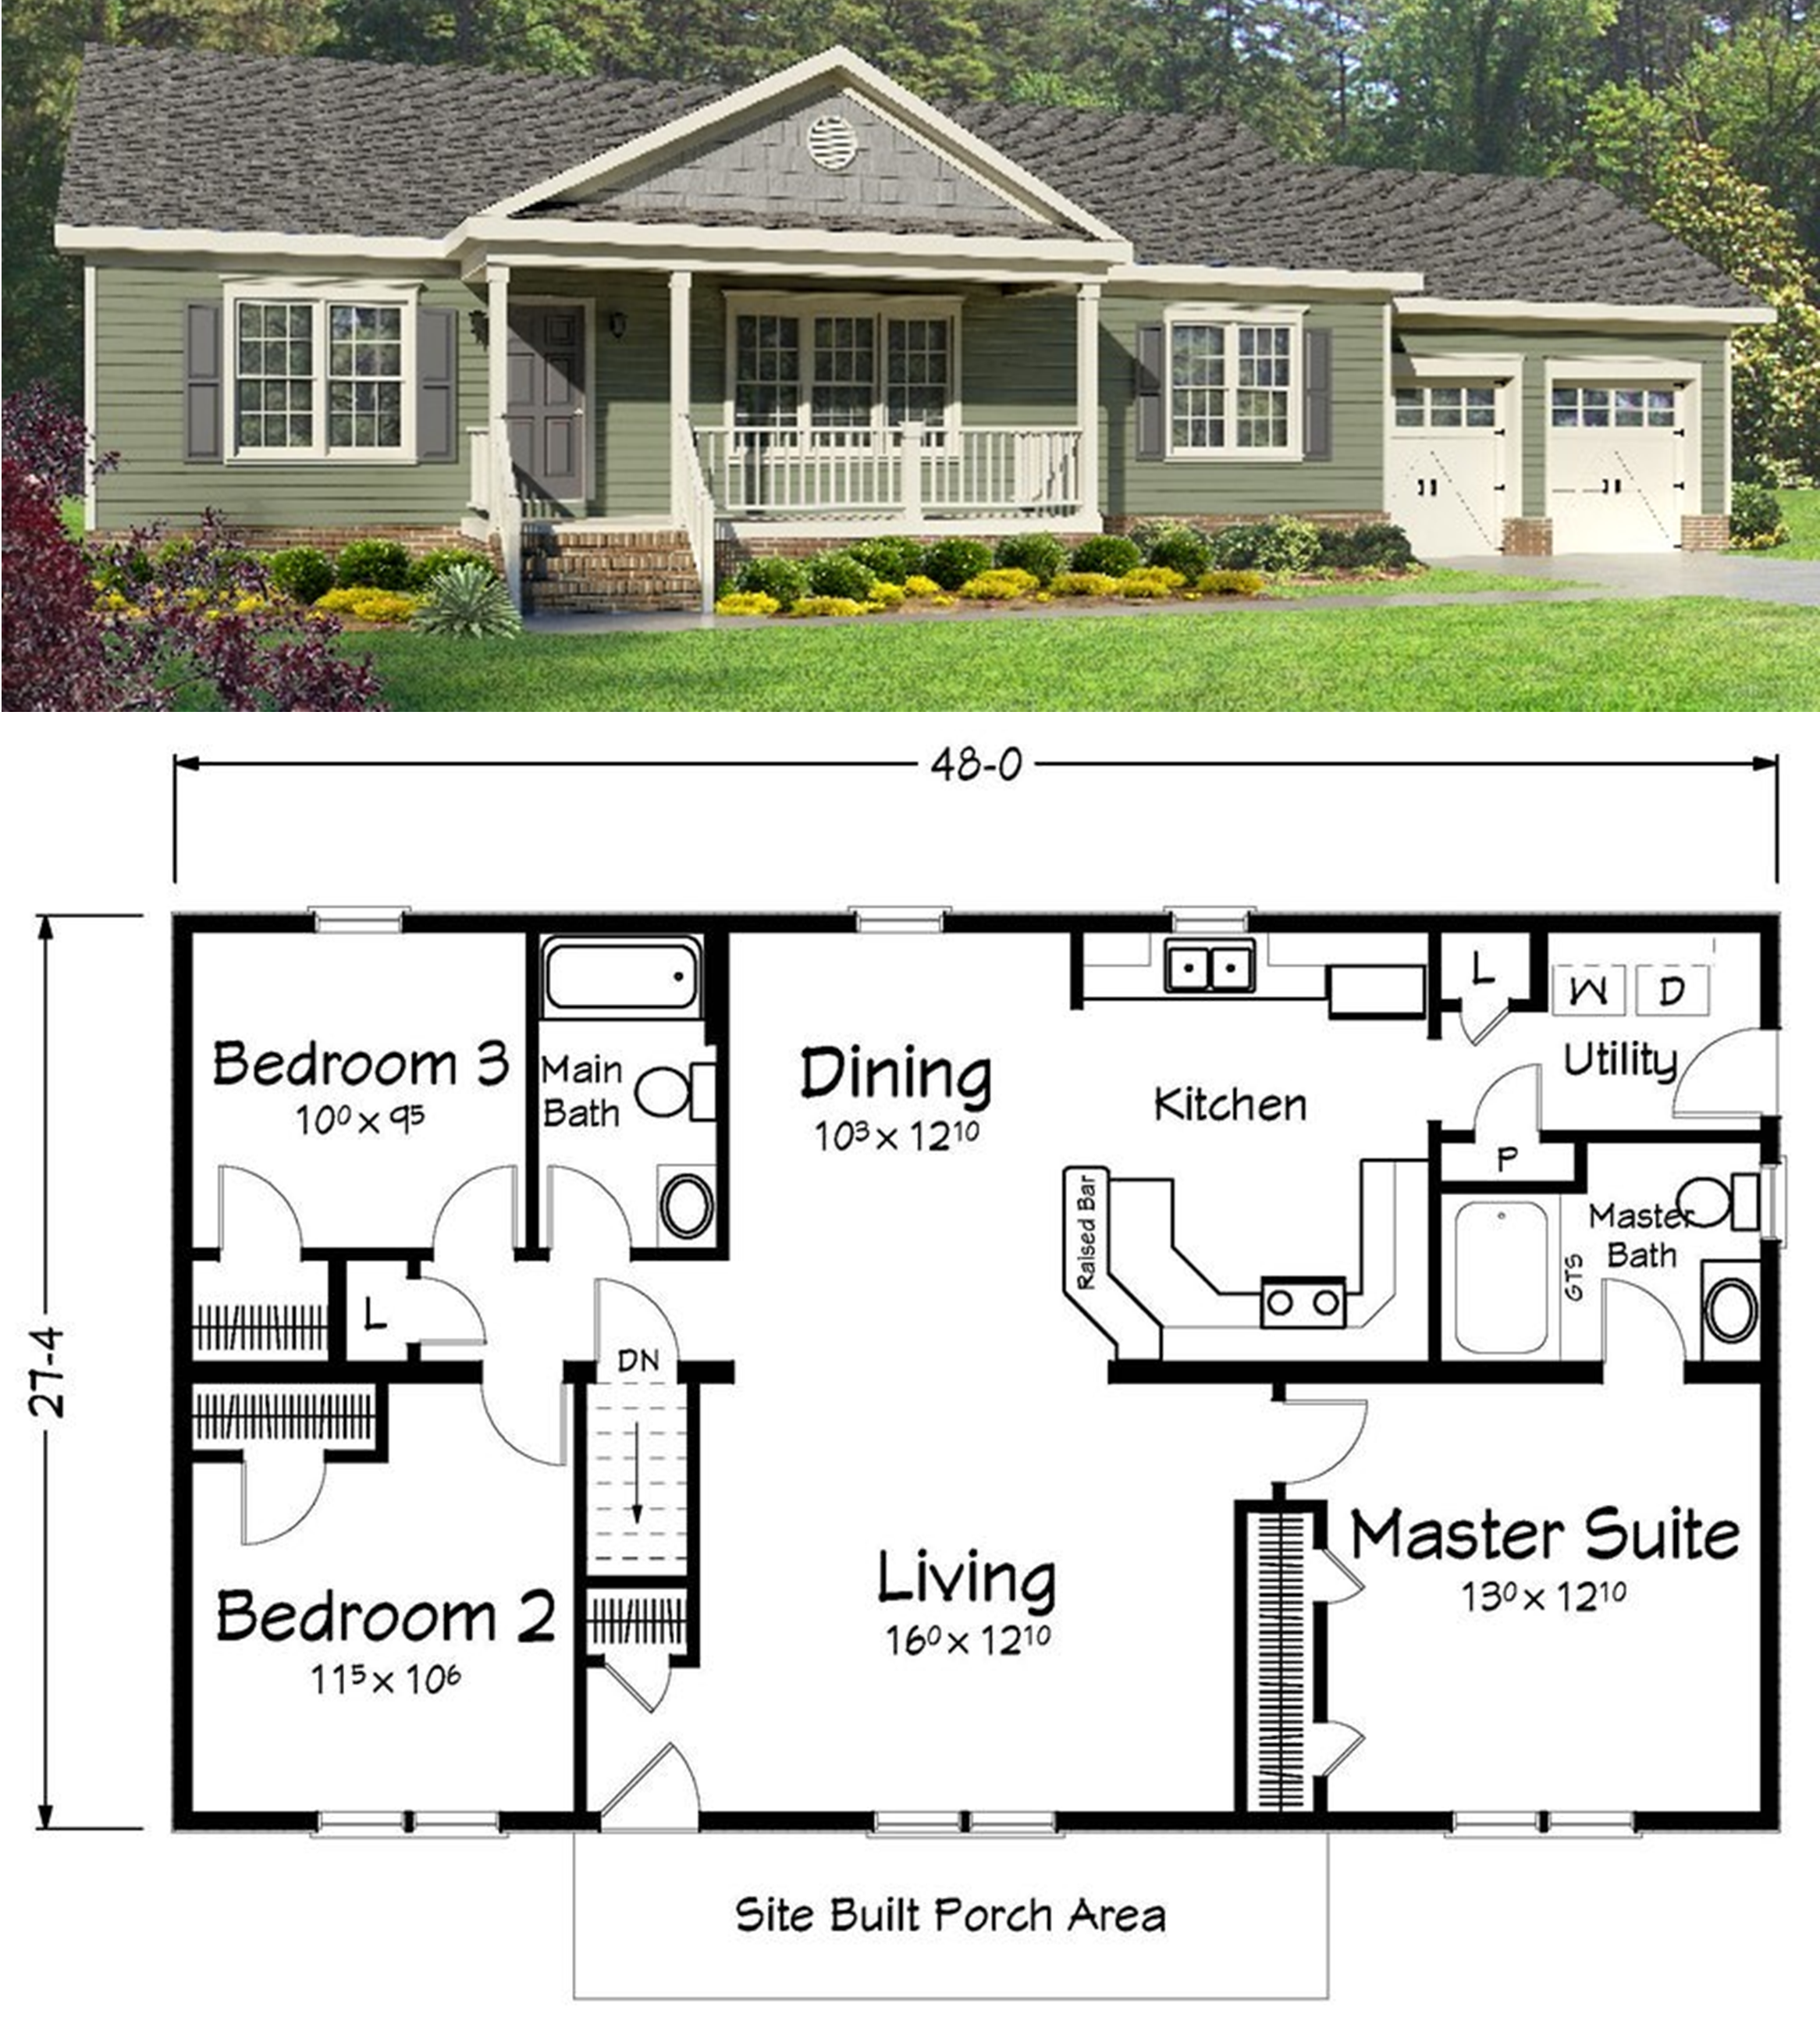 What do you think of this Ranch style home? | Floor plans ... Ranch House Design Style on contemporary ranch house designs, victorian house designs, architecture modern house designs, carriage house designs, bungalow designs, beautiful ranch house designs, best ranch home designs, farmhouse designs, american ranch designs, ranch country house designs, mid century modern ranch home designs, craftsman house designs, simple ranch home designs, ranch exterior house designs, new ranch home designs, a frame house designs, small ranch house designs, morton house designs, tree house designs, wolf house designs,